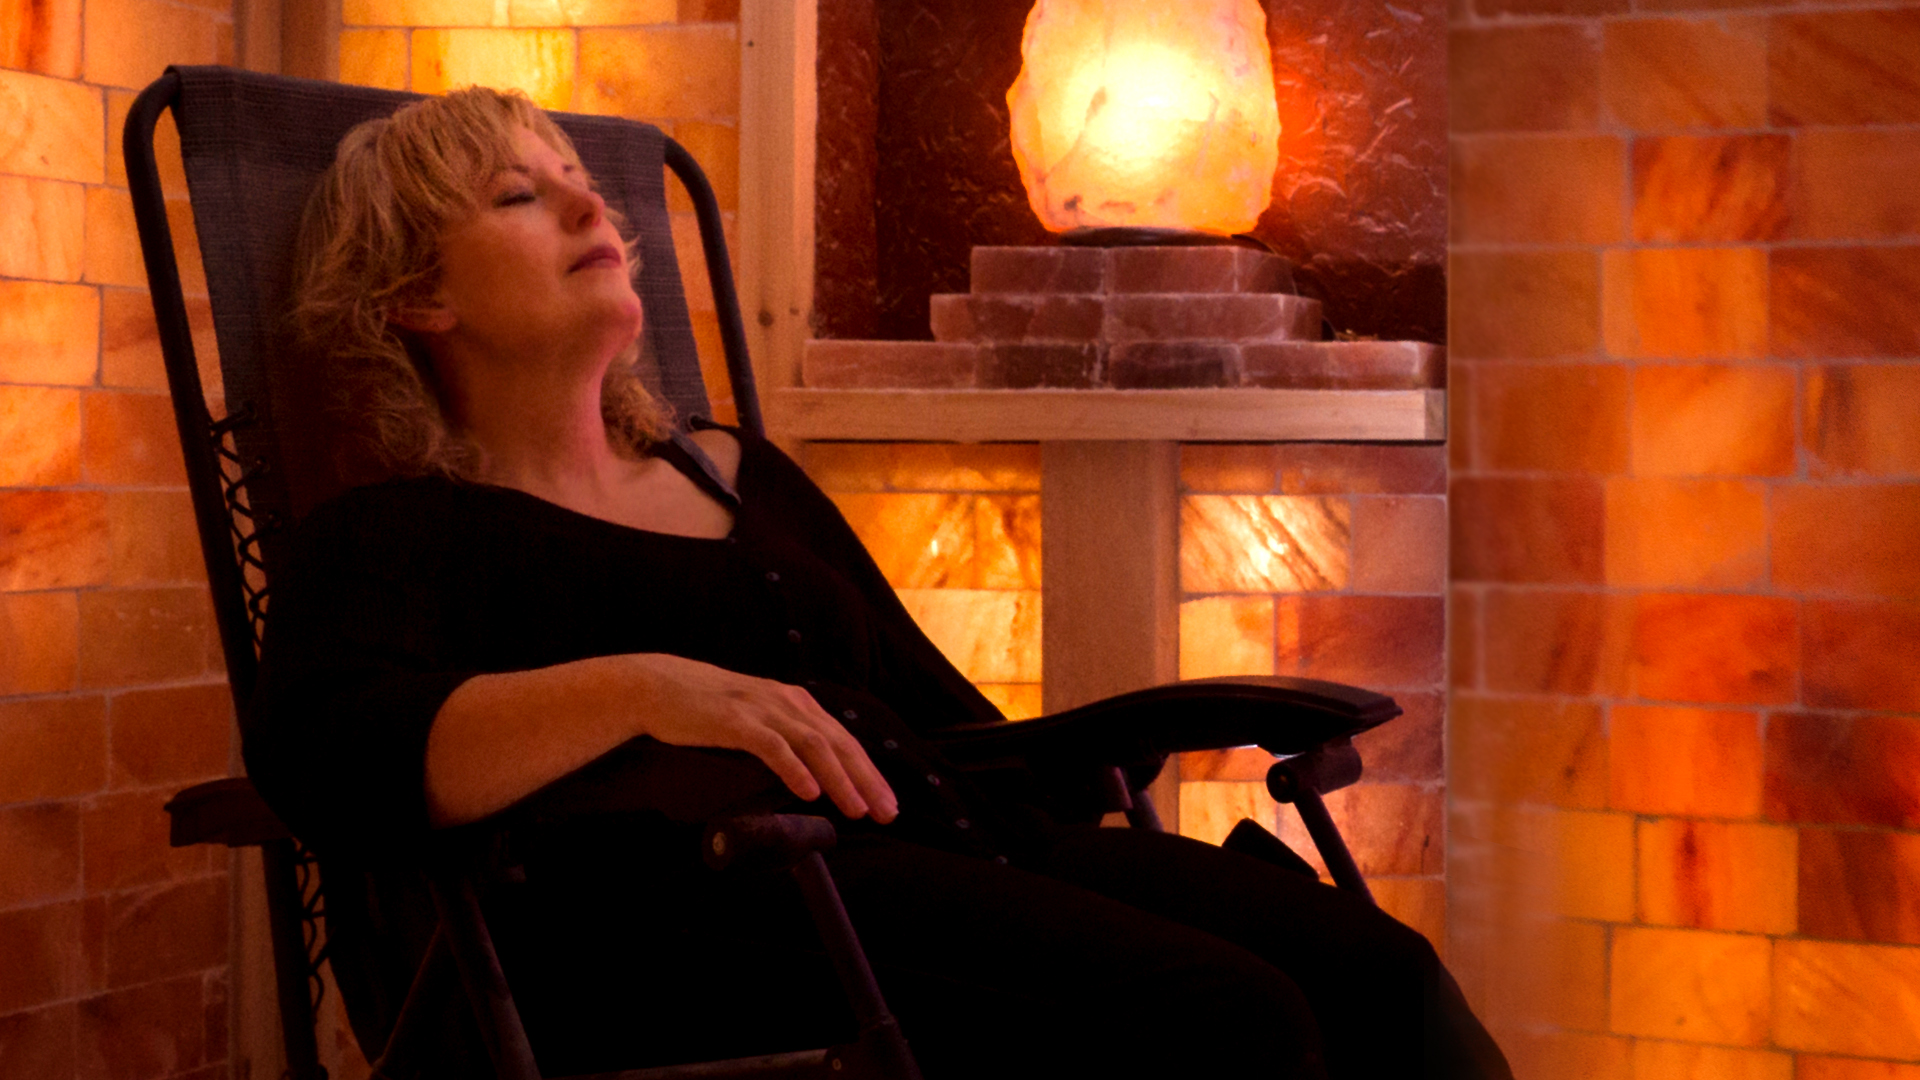 adult old blonde woman leaning back in chair at himalayan salt cave, relaxing and meditating